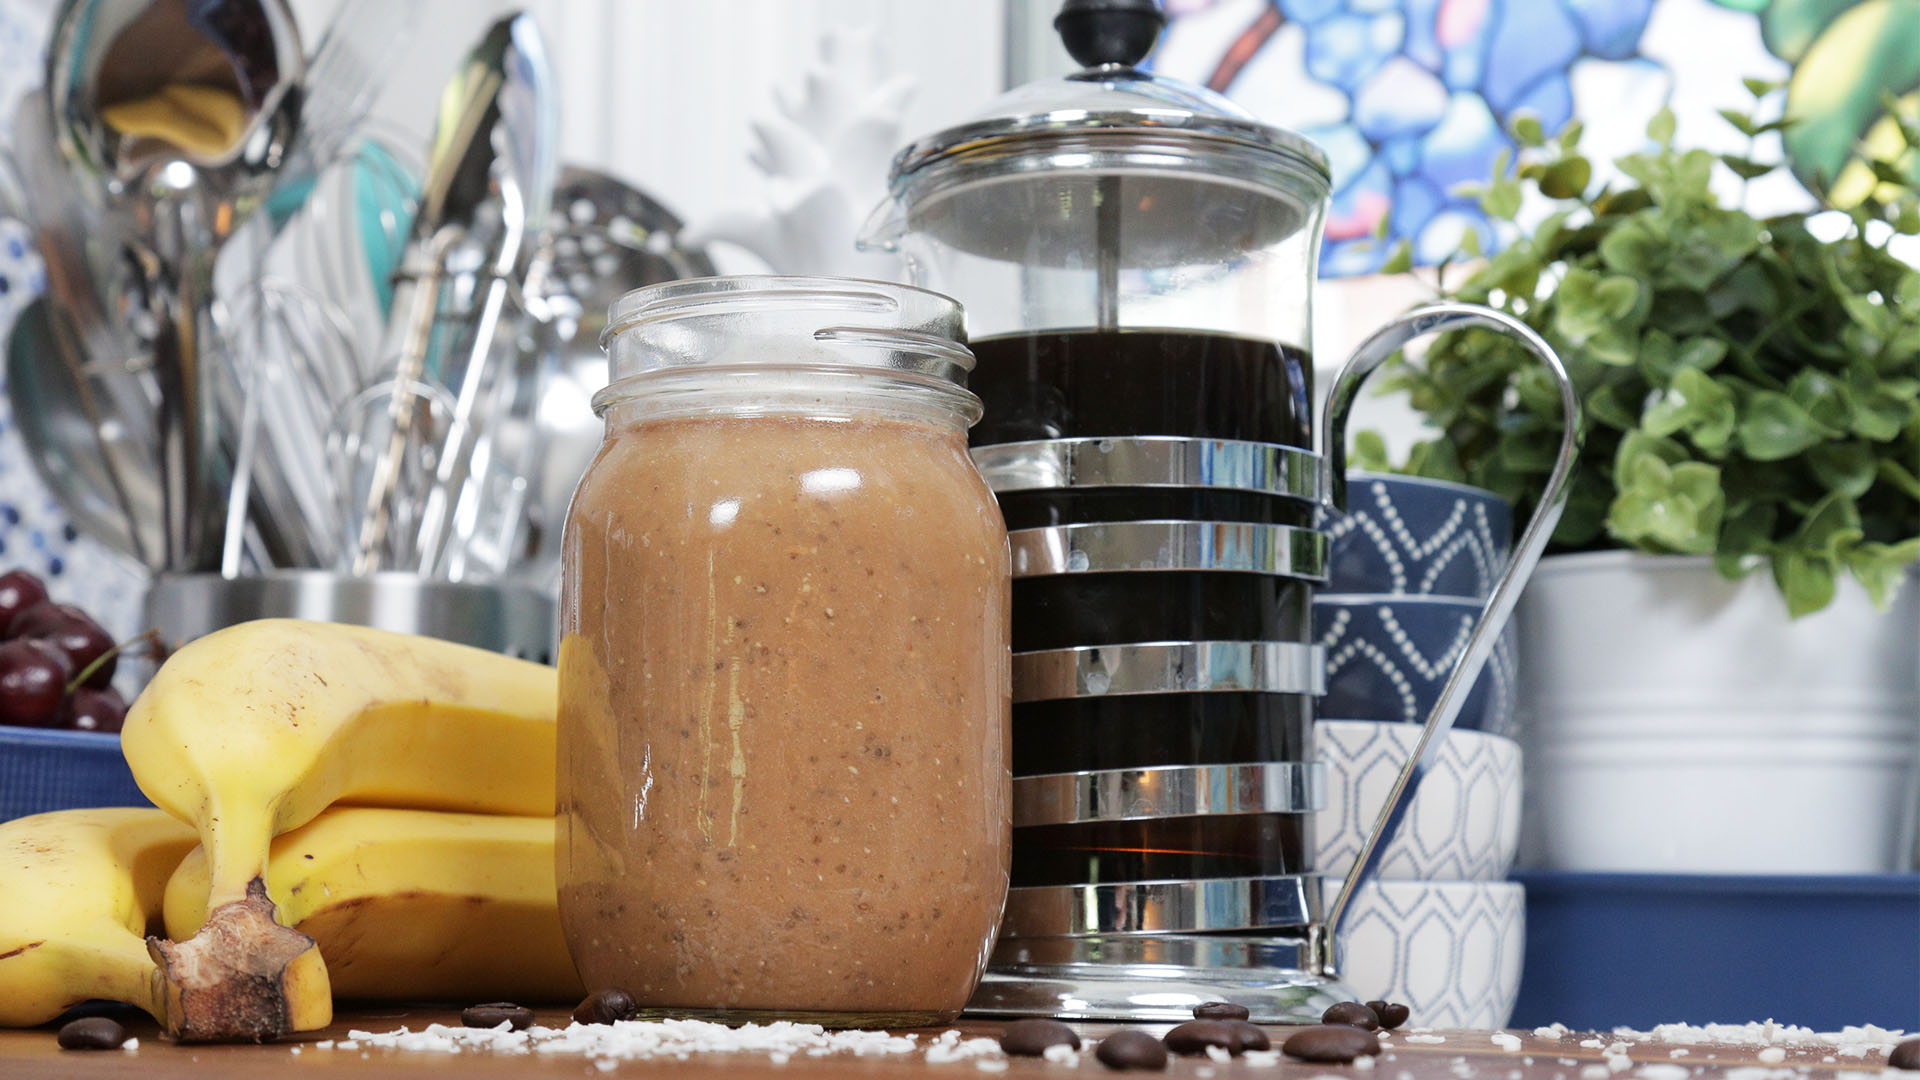 Creamy-Coconut-Coffee-Smoothie 16x9